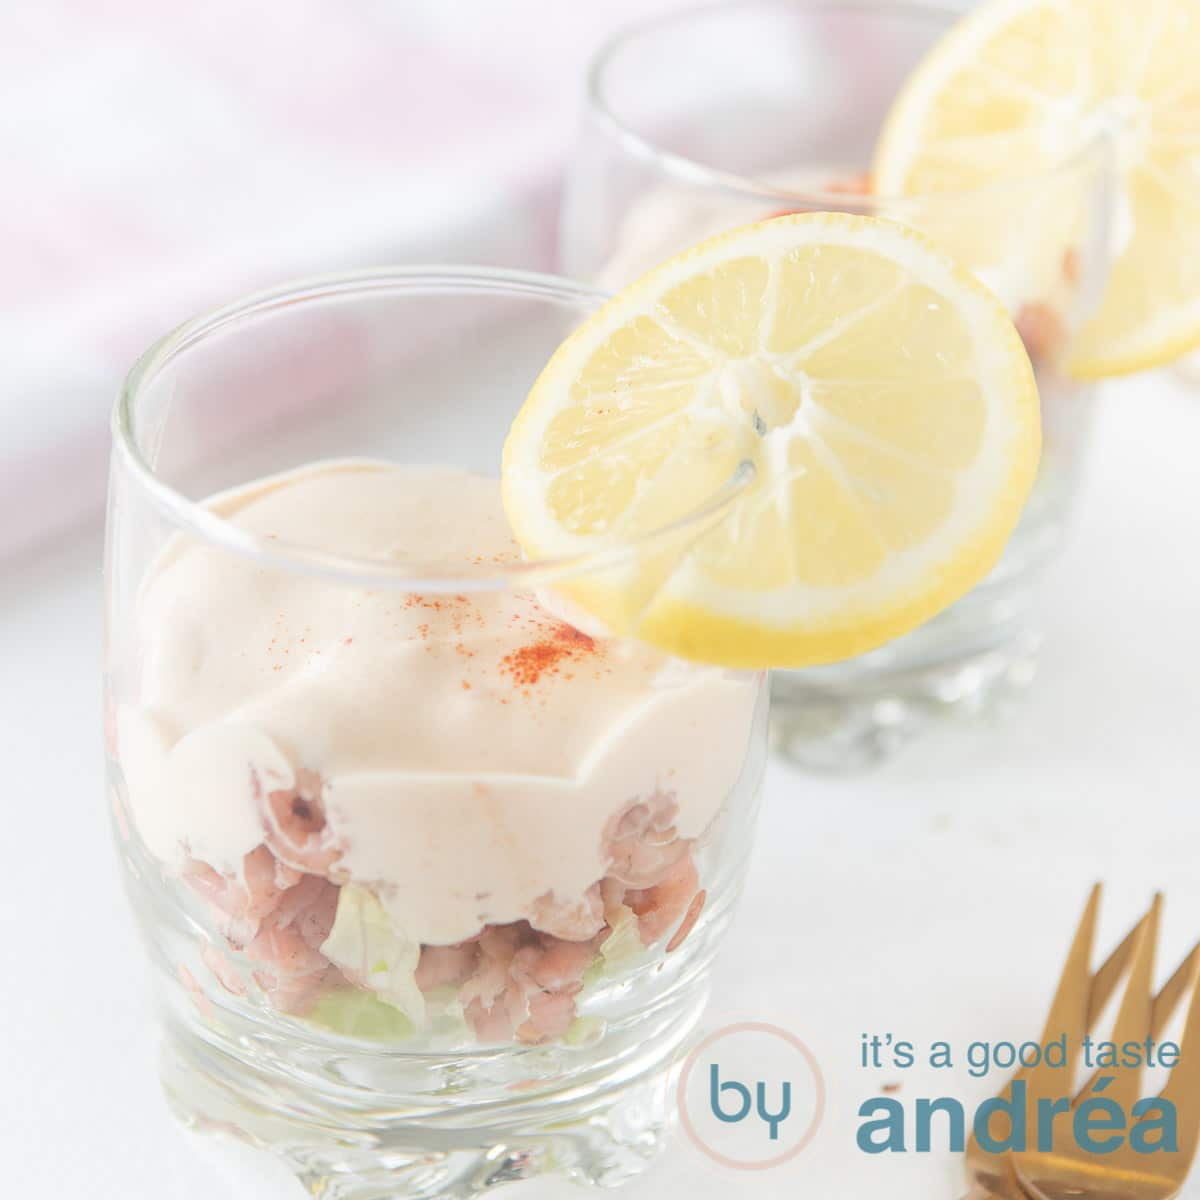 a glass filled with shrimp ice berg lettuce and sauce.